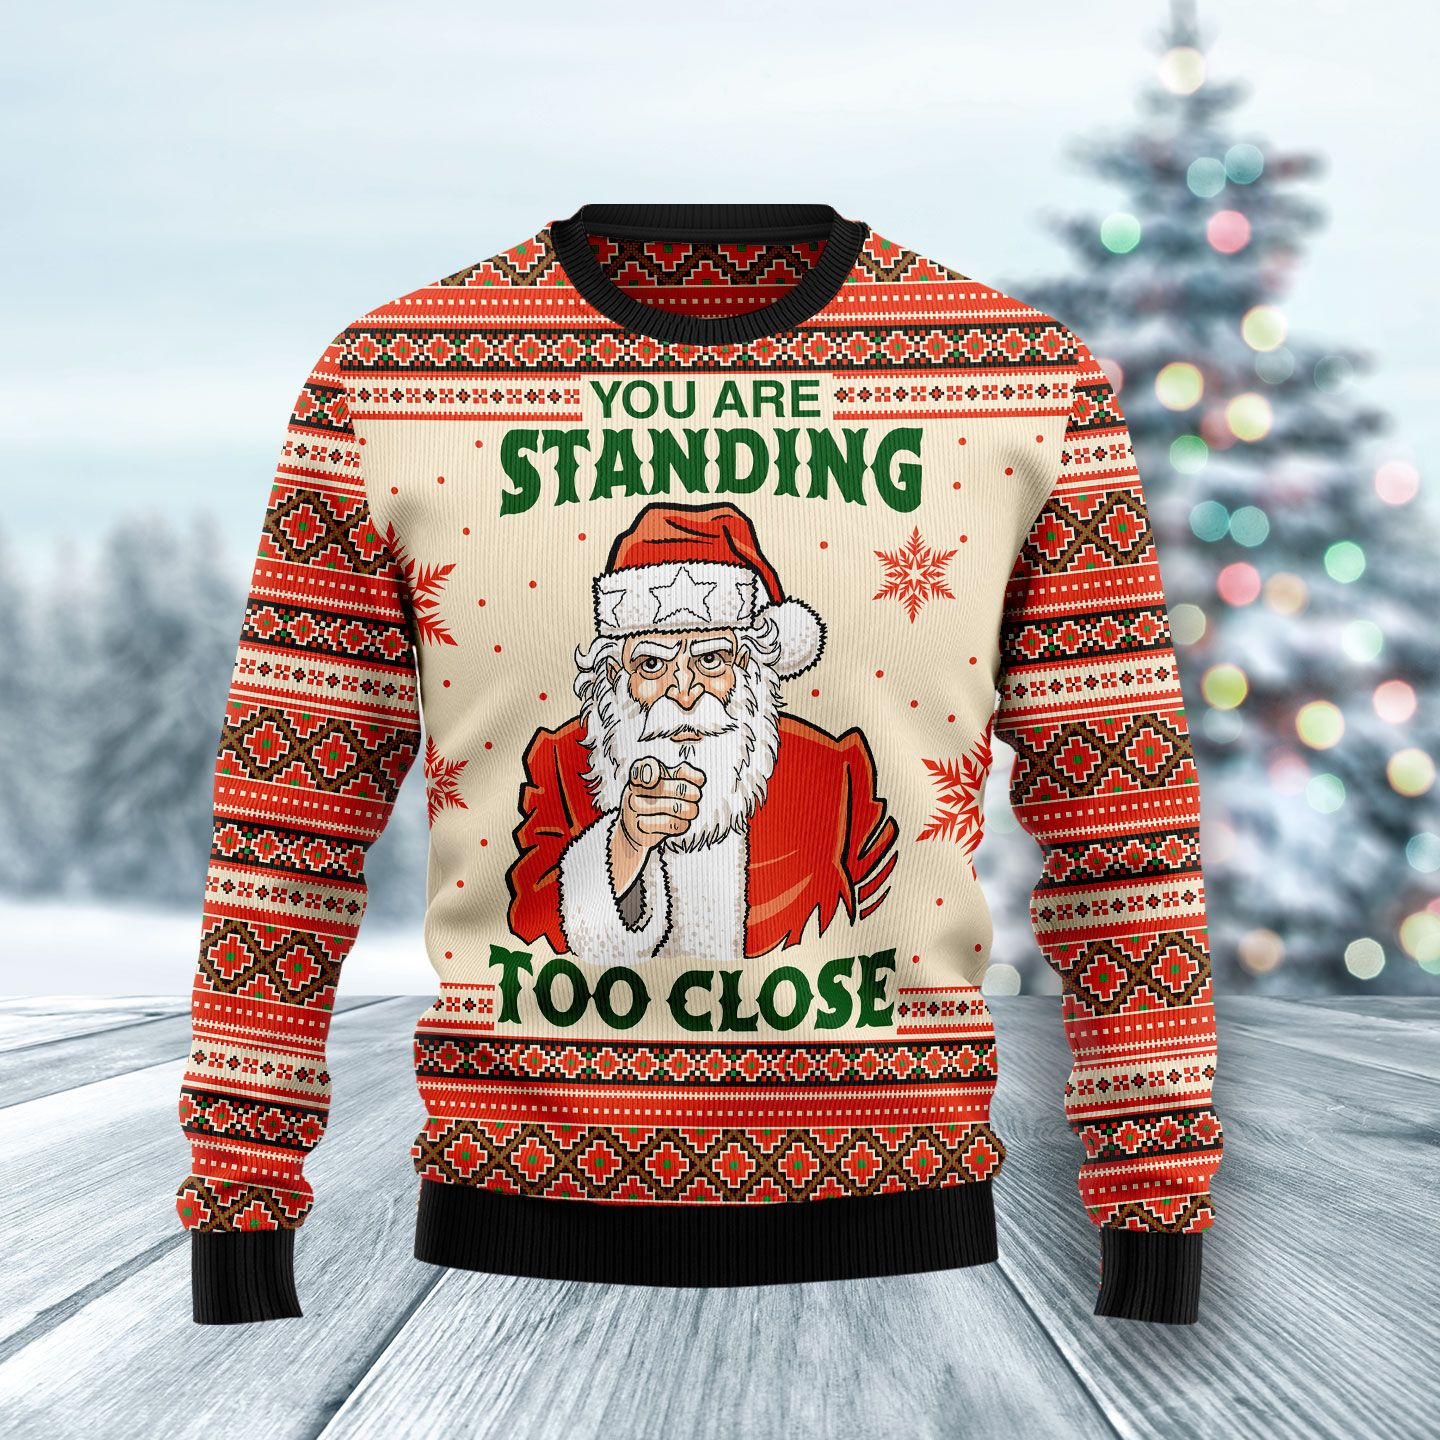 You My Friend Should Have Been Swallowed Wool Christmas Sweater